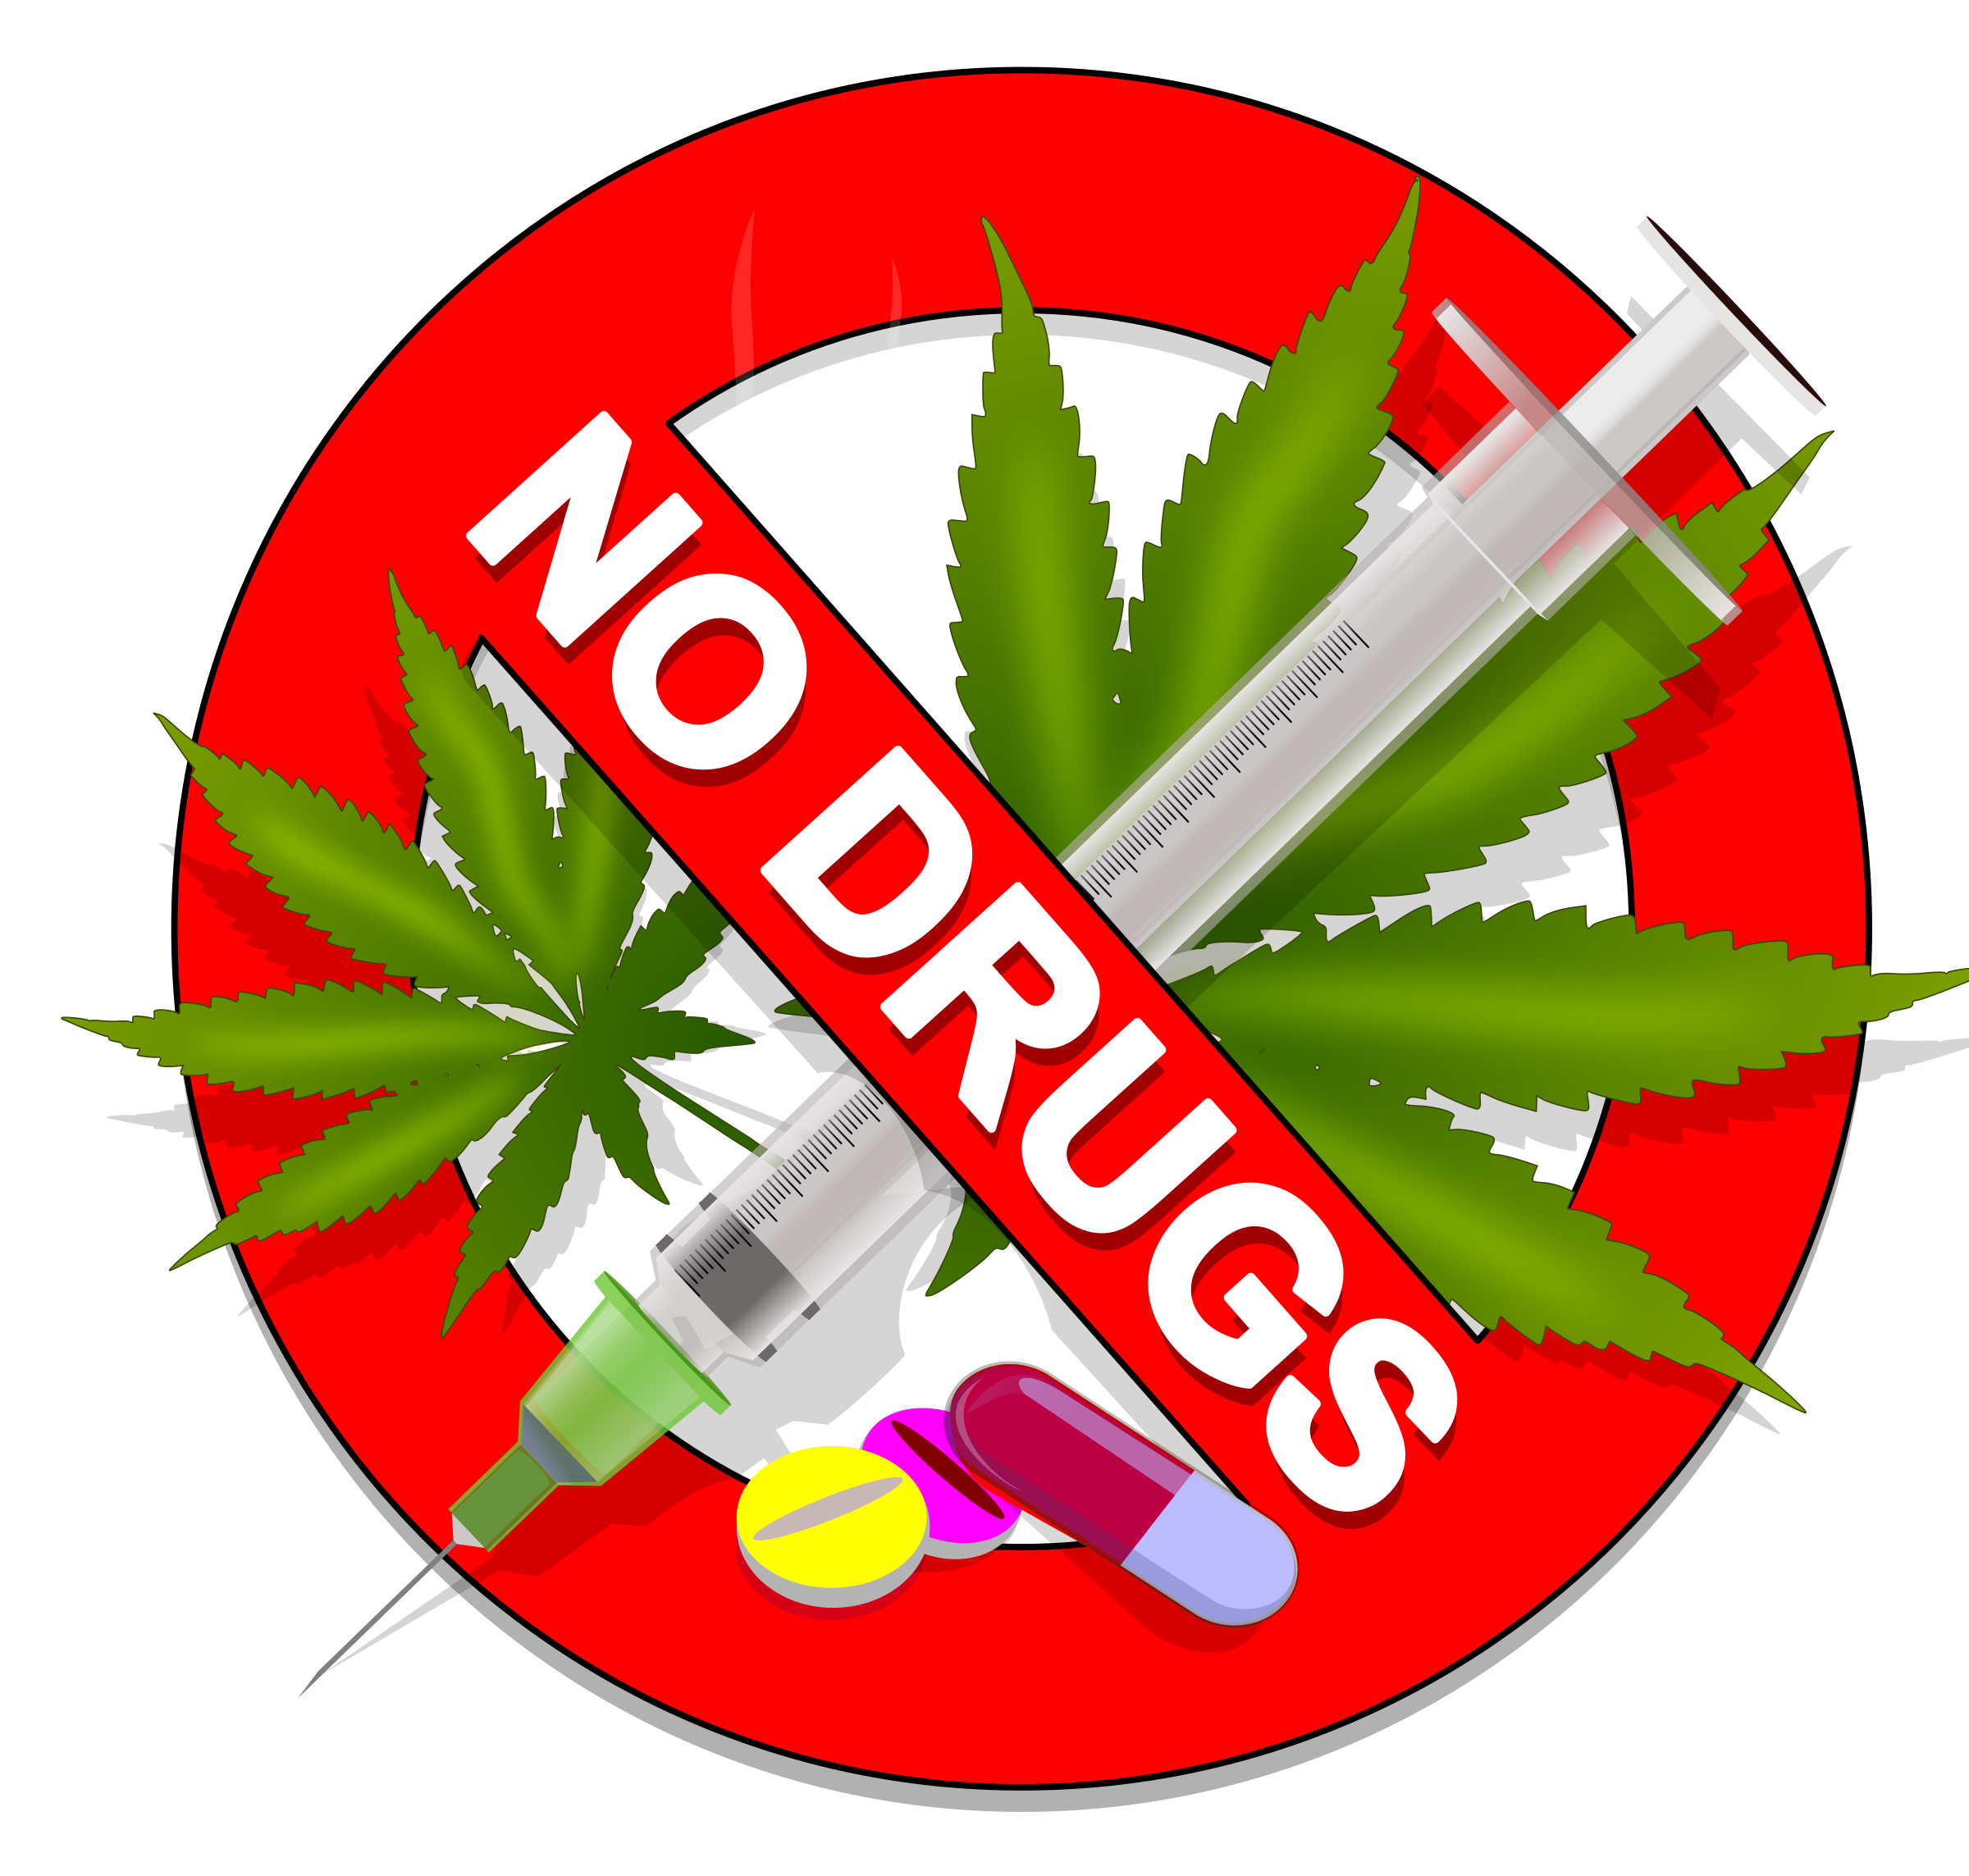 No Drugs: Weed, Speed or Pills! by jonathan357